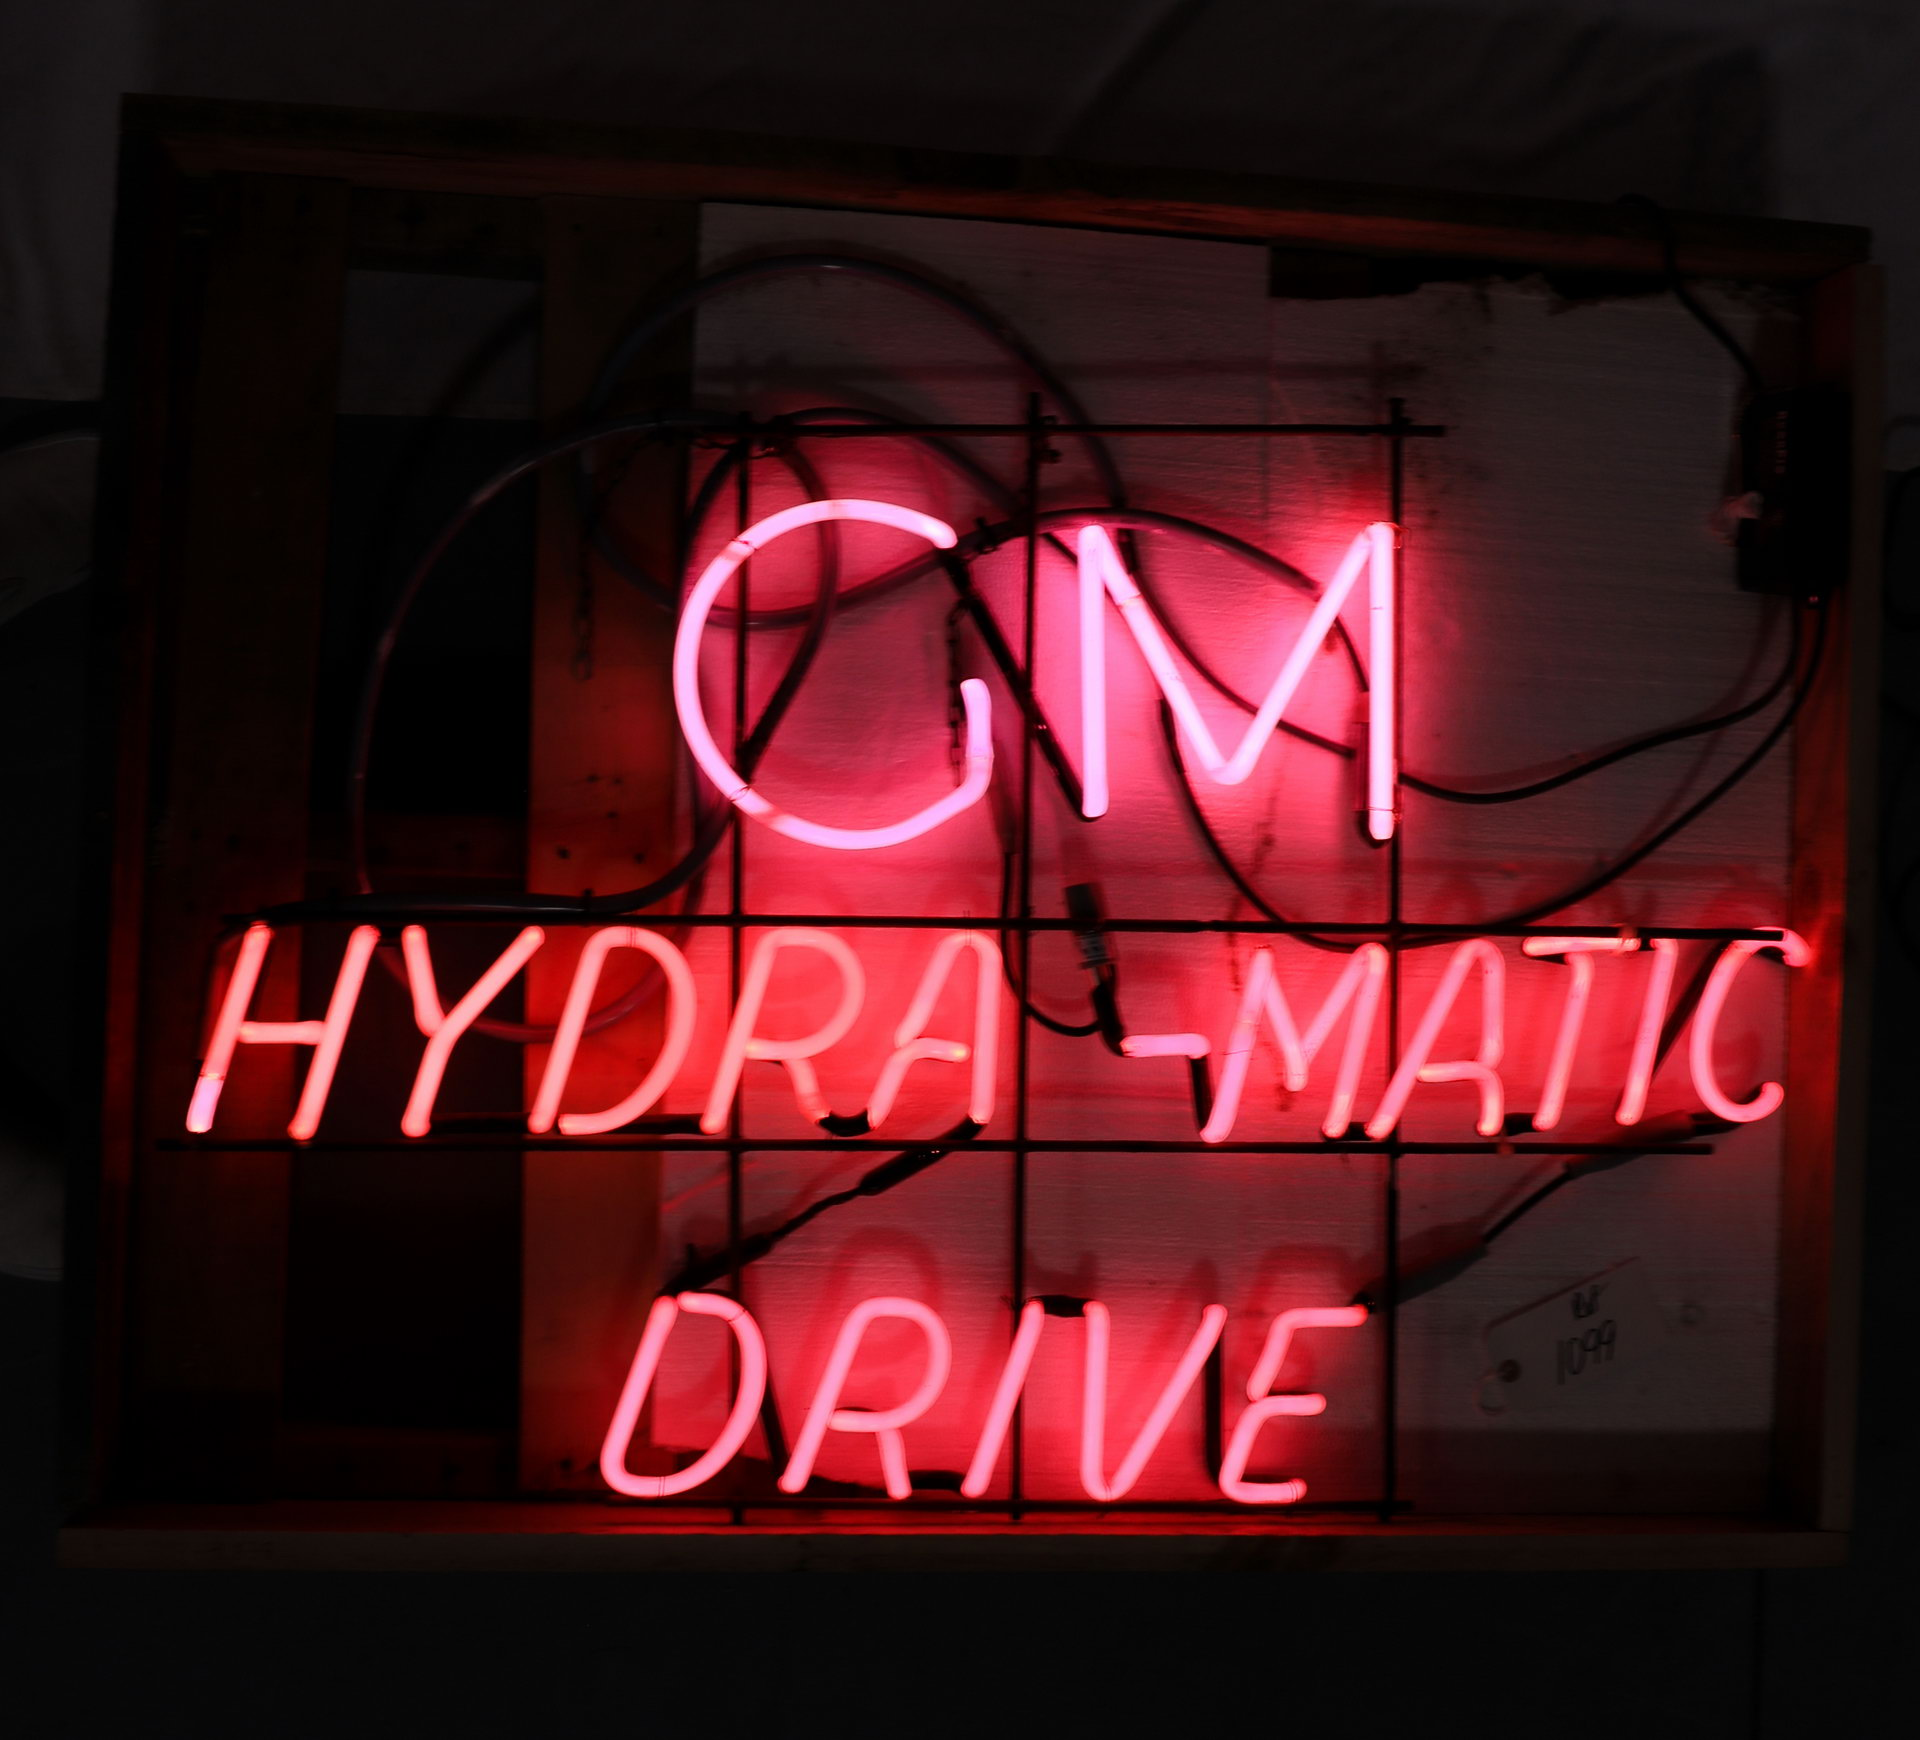 GM Hydra Matic Drive Lighted Neon Sign